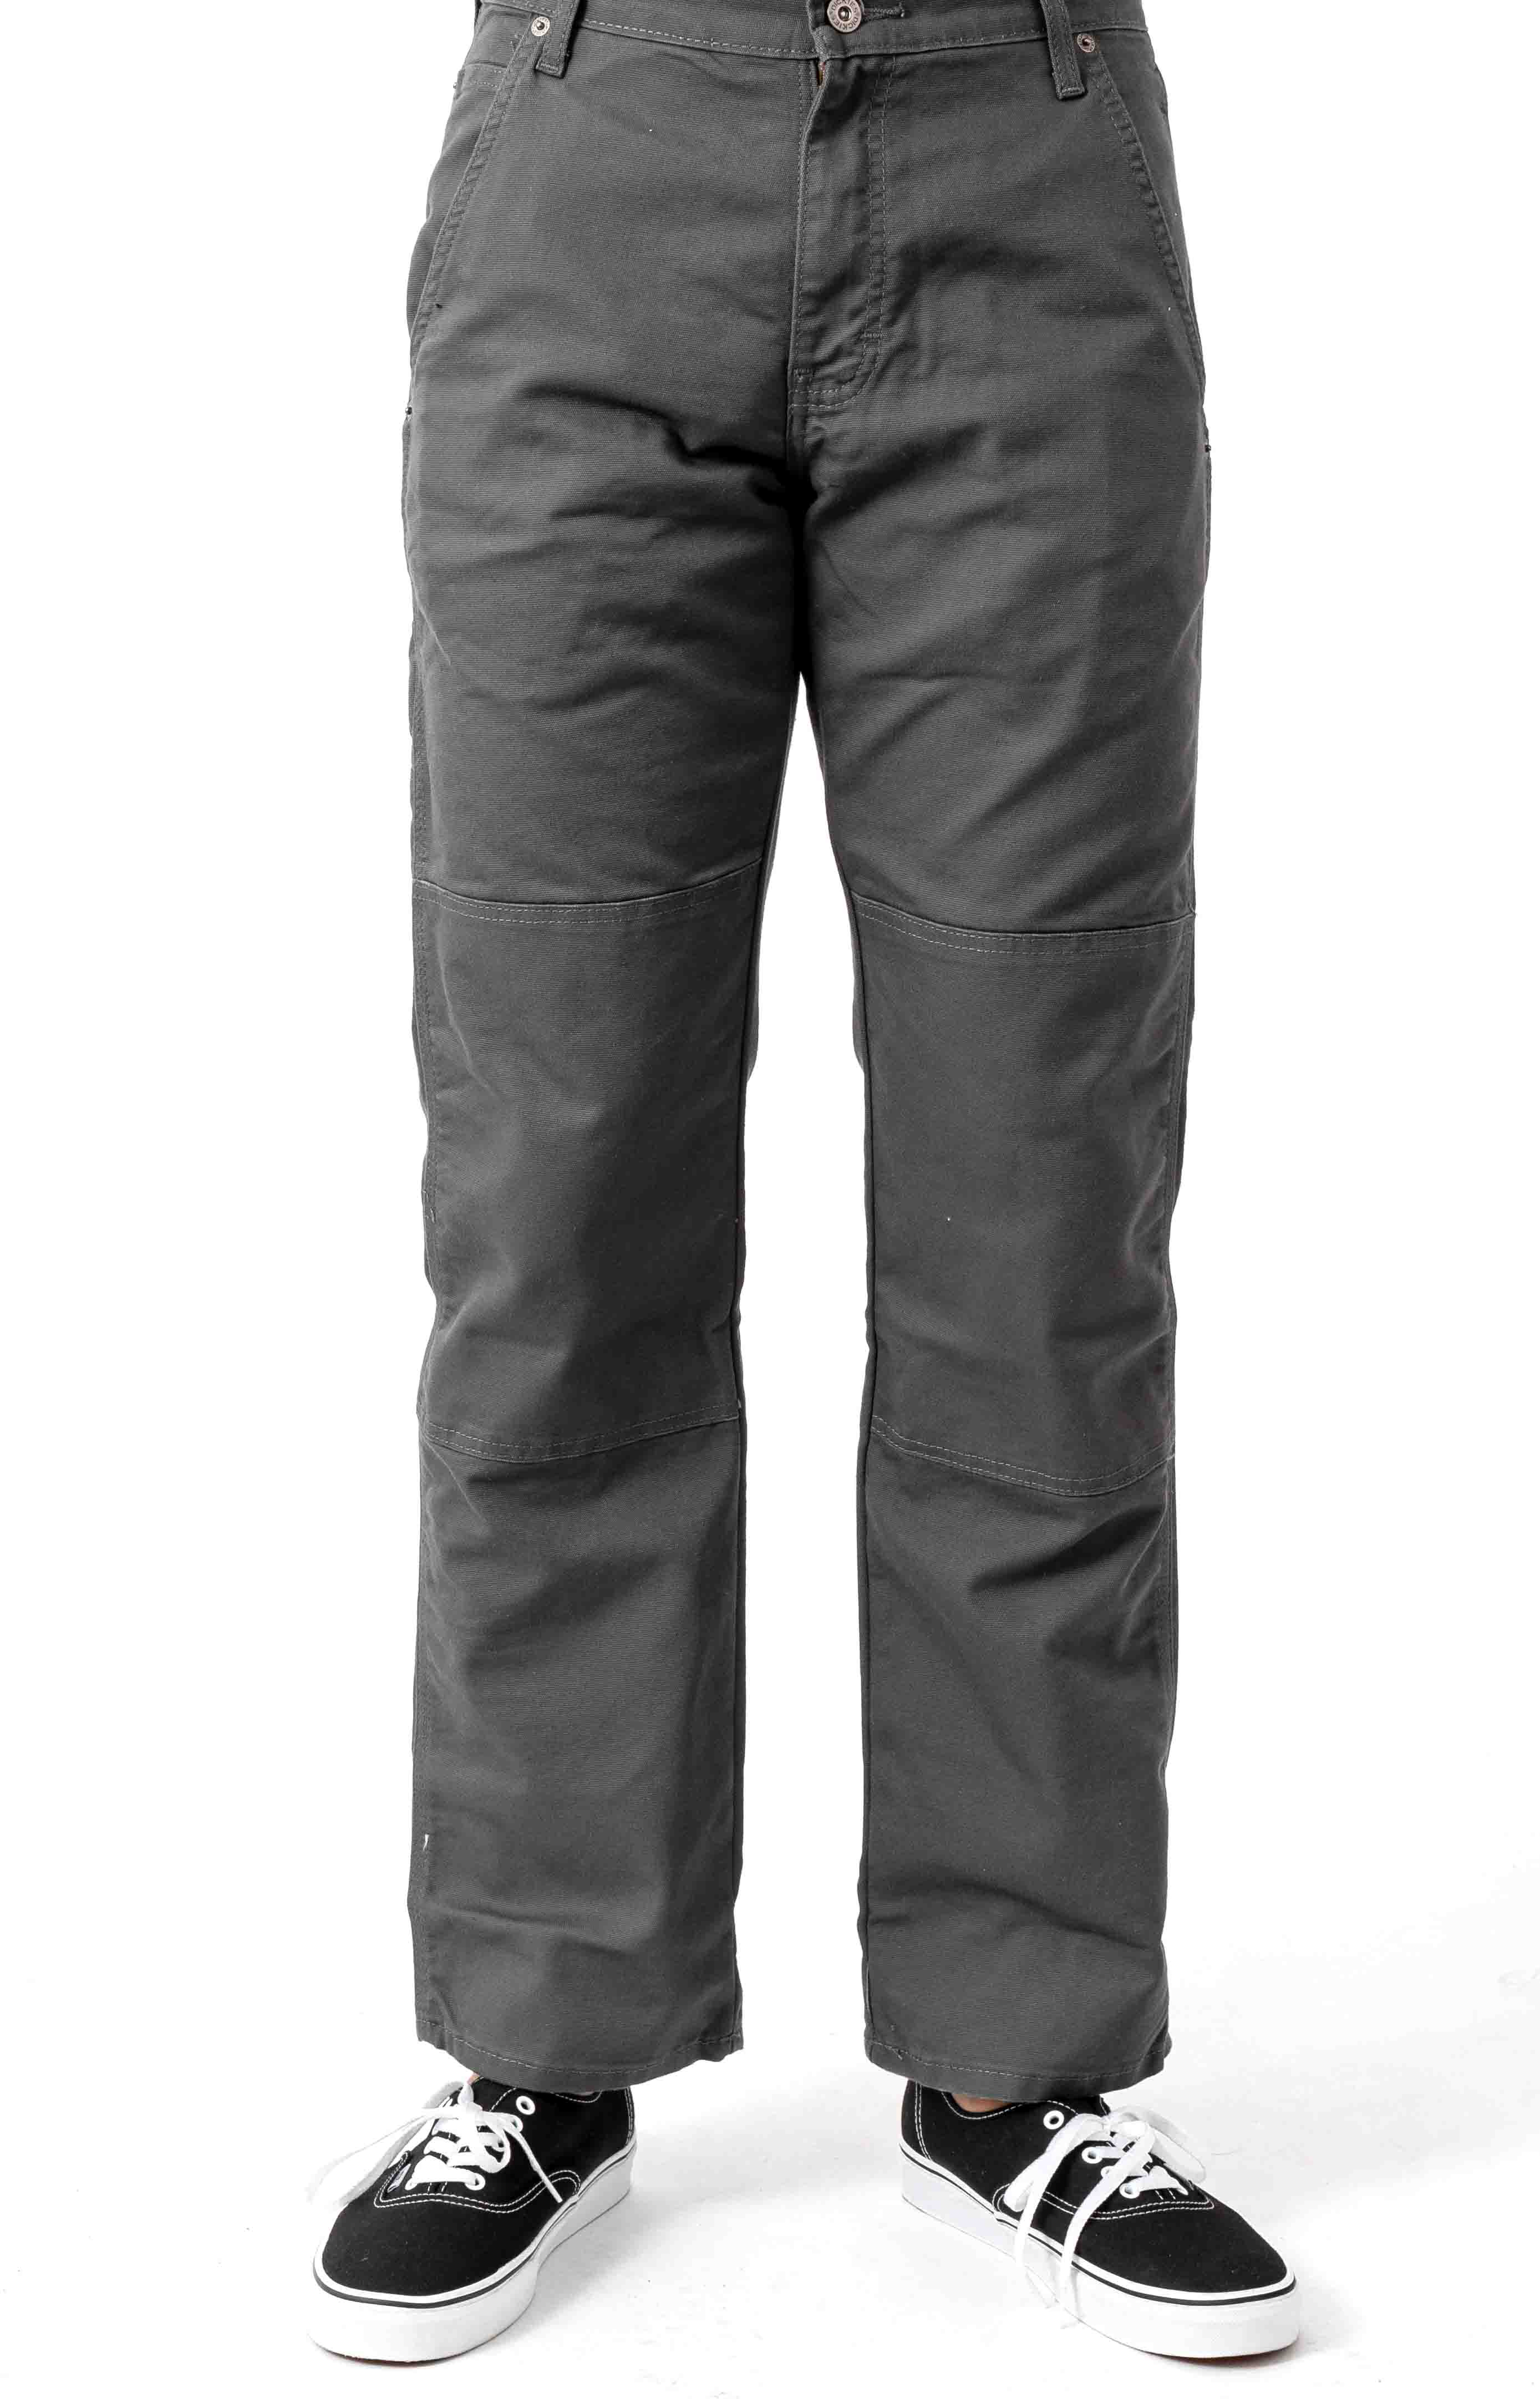 (DP903SSL) FLEX Regular Fit Tough Max Duck Double Knee Pant - Stonewashed Grey